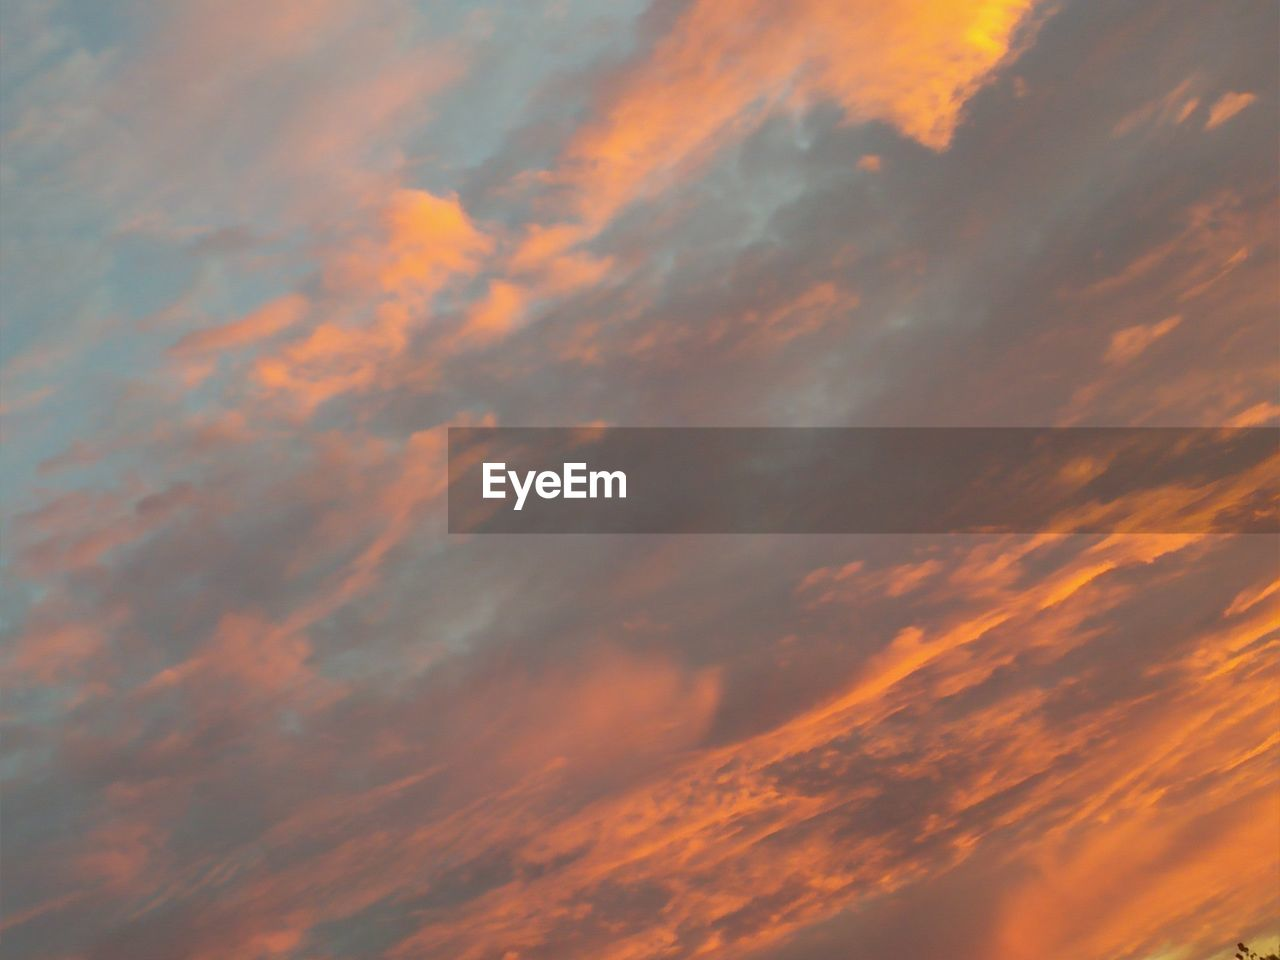 sky, cloud - sky, beauty in nature, sunset, scenics - nature, orange color, tranquility, low angle view, tranquil scene, backgrounds, no people, full frame, idyllic, nature, dramatic sky, outdoors, cloudscape, moody sky, awe, meteorology, ominous